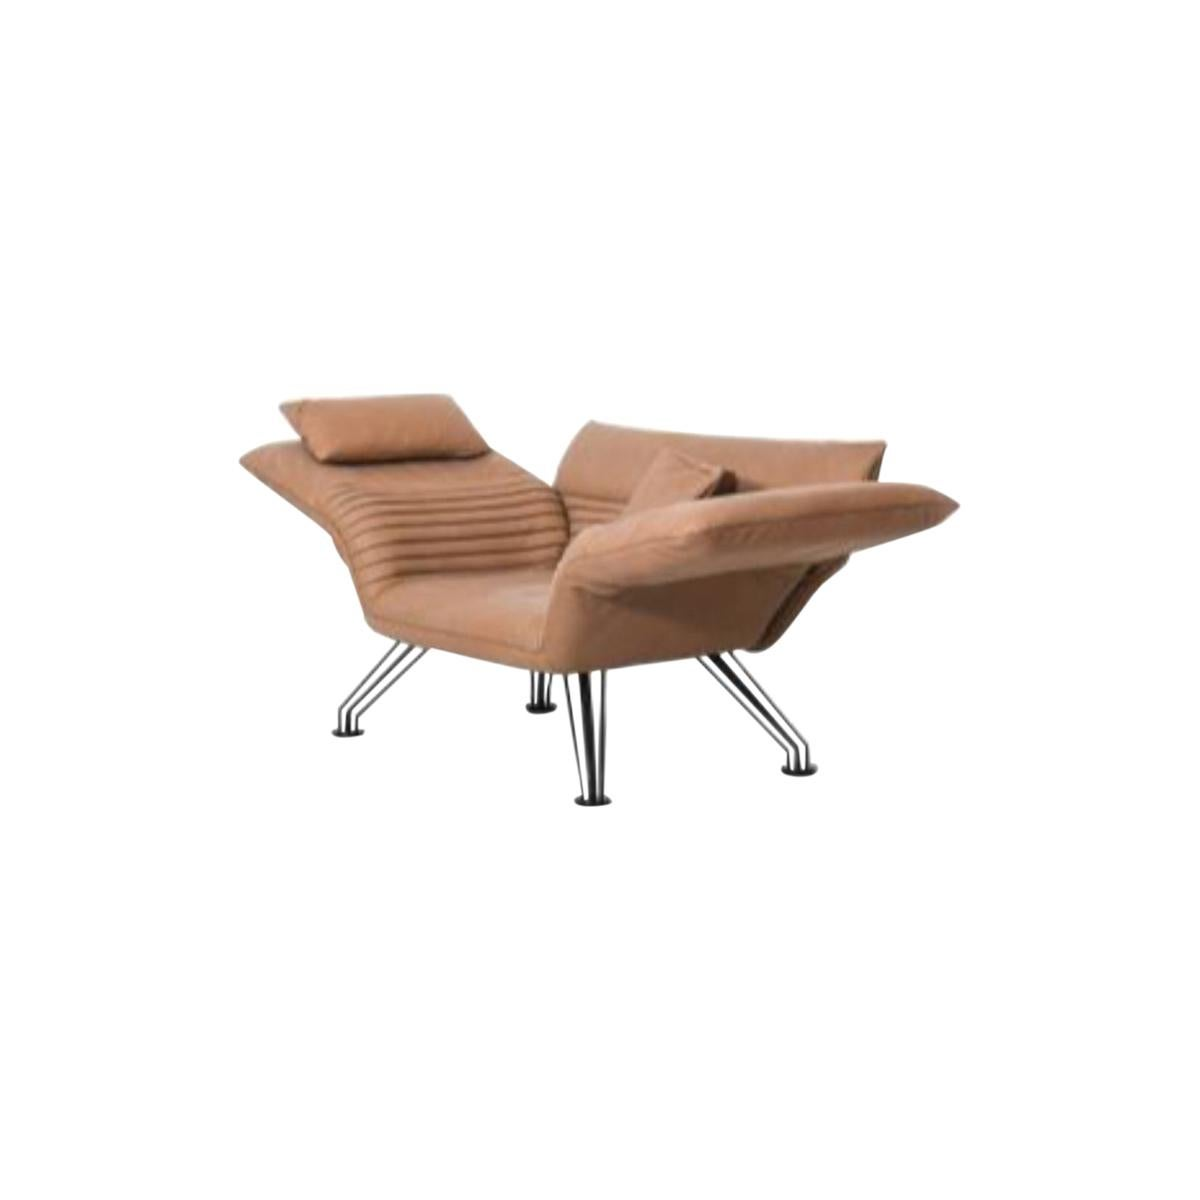 Set of DS-142 Multifunctional Lounge Chair with Cushions by De Sede